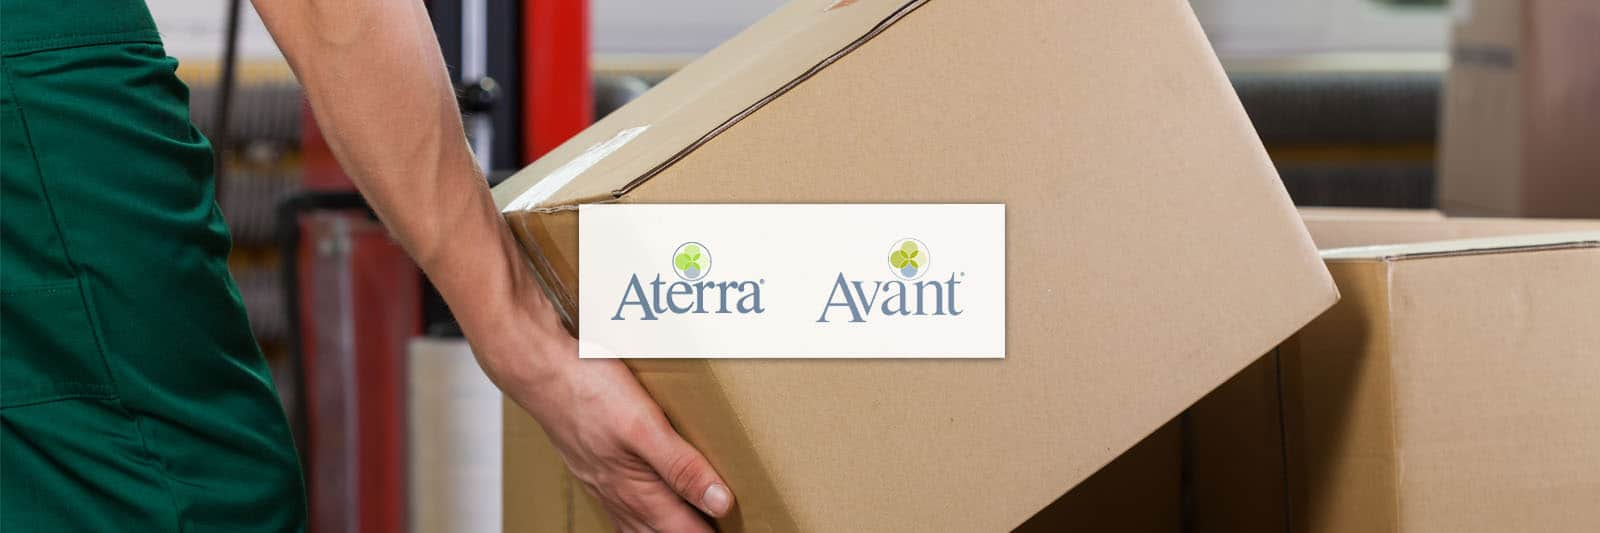 Avant and Aterra Distributor Opportunities